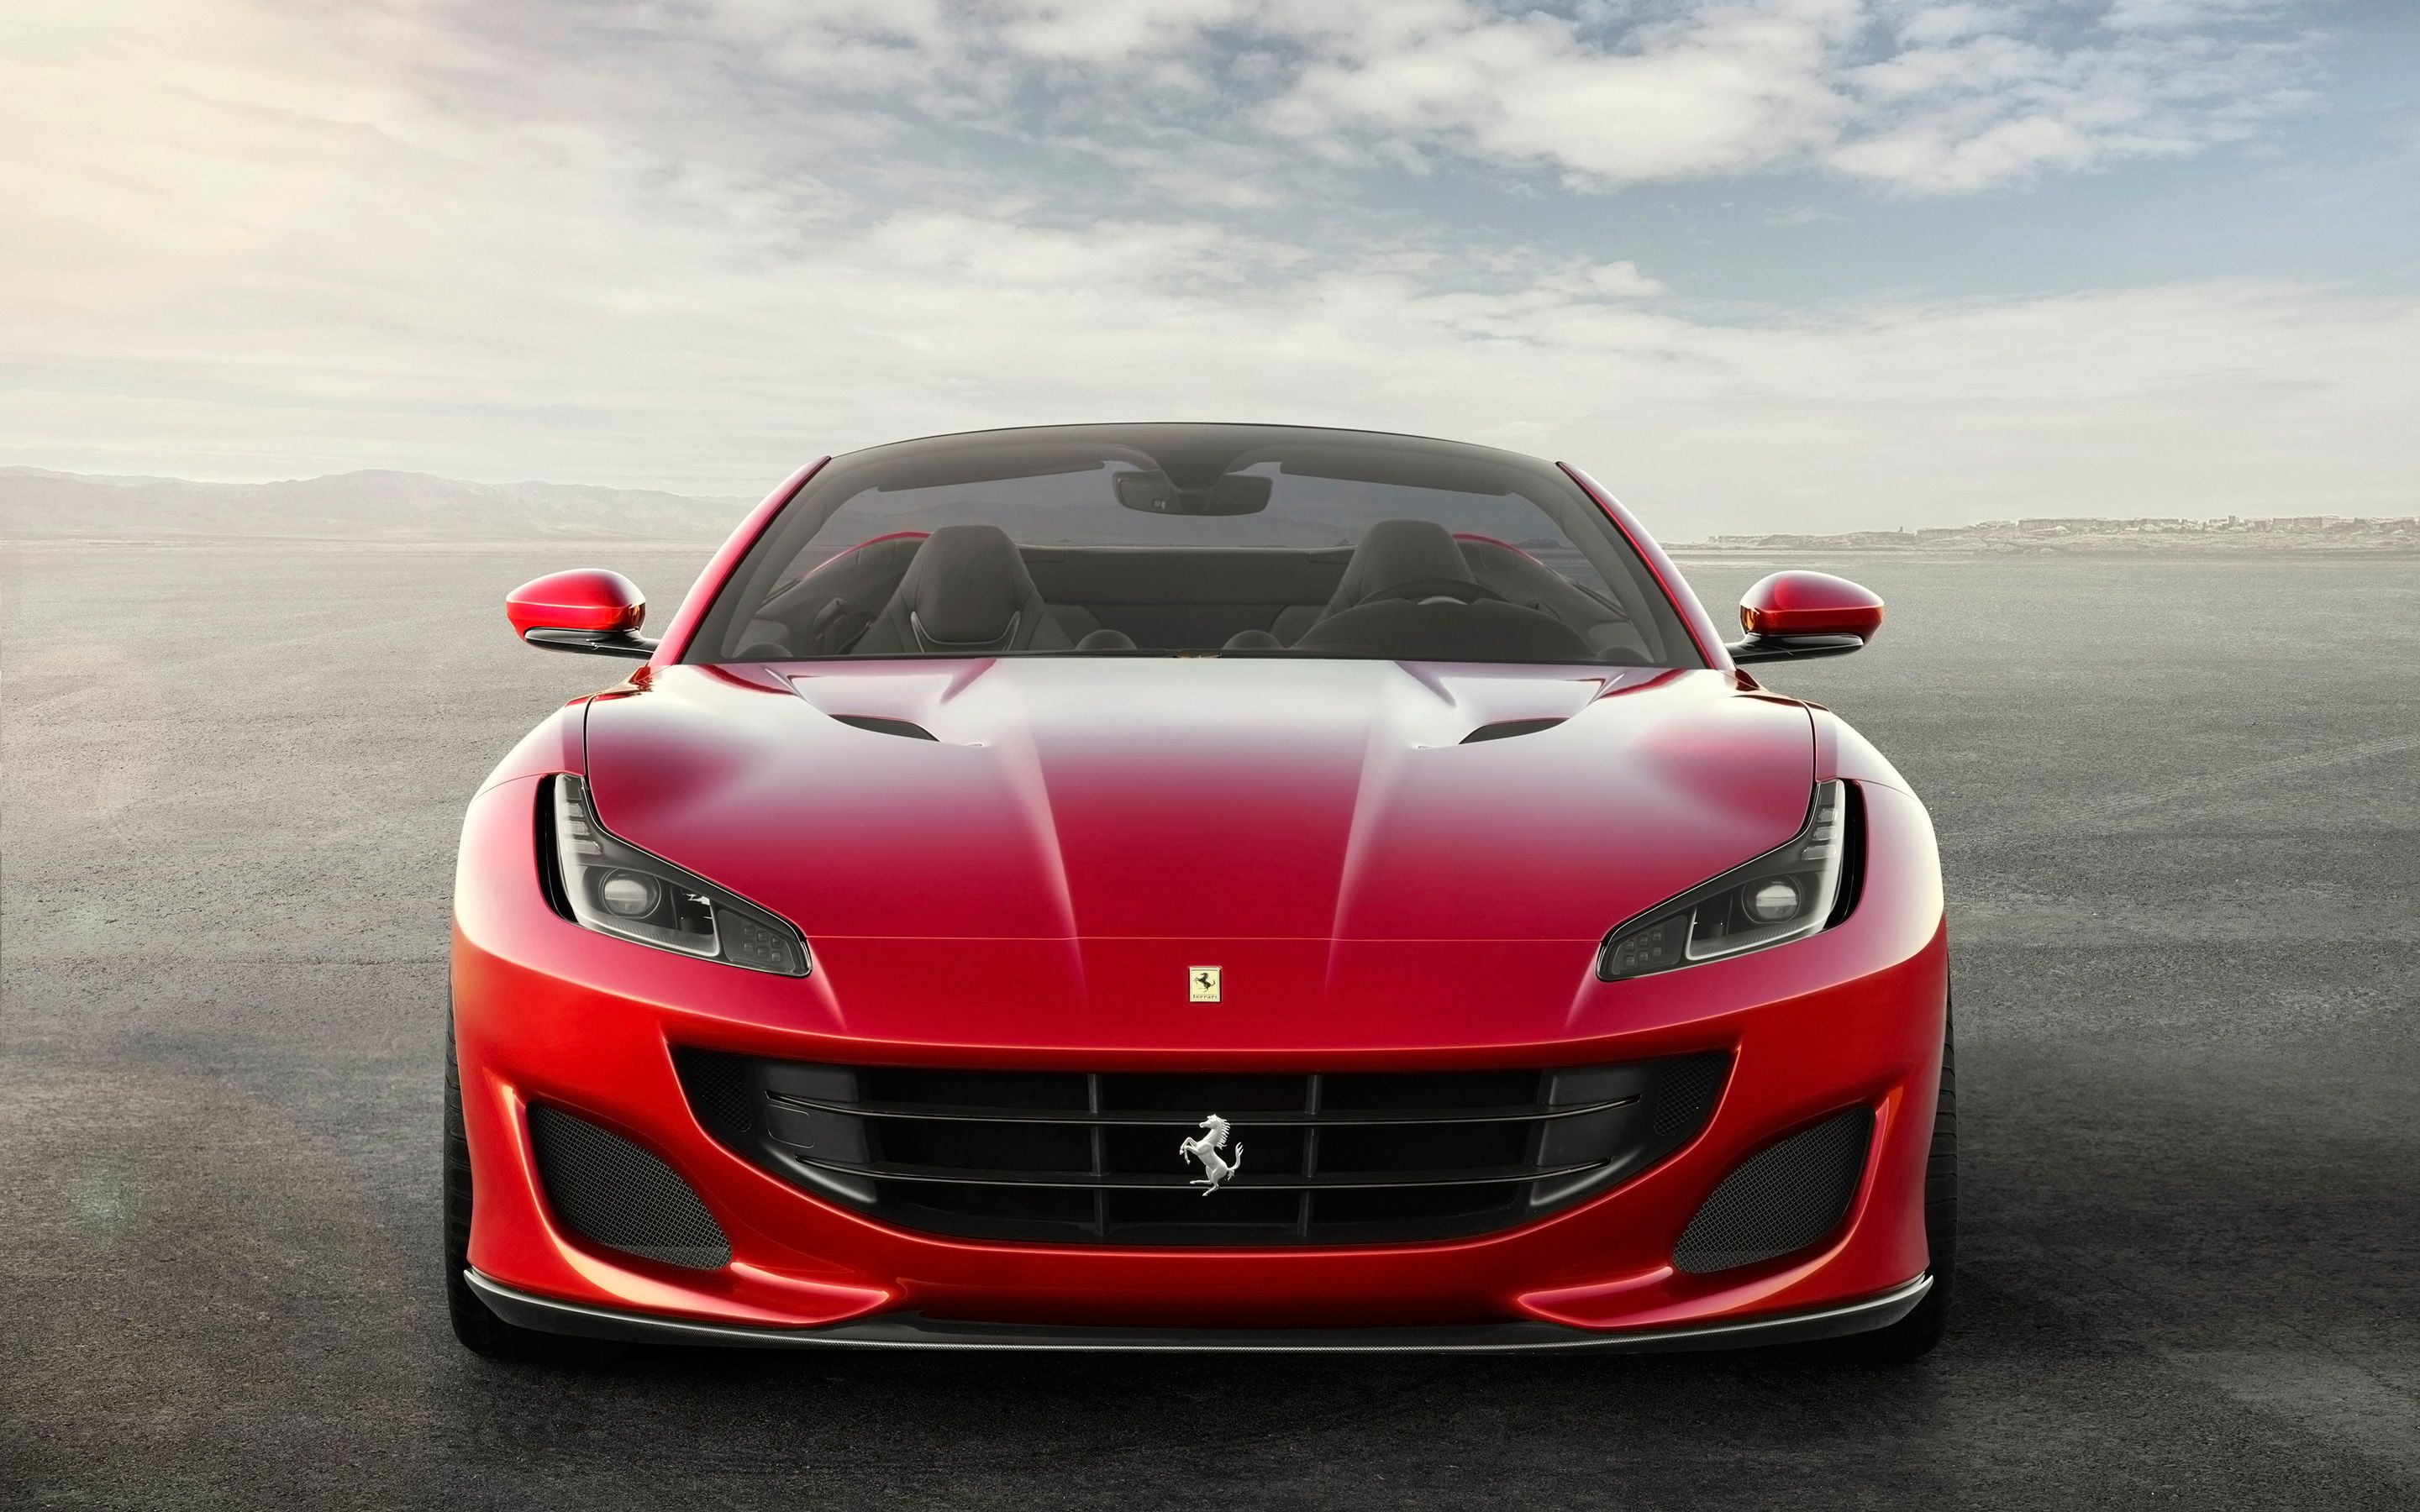 5 Luxury Cars to Keep an Eye On at IAA 2017 Ferrari Portofino iaa 2017 5 Luxury Cars to Keep an Eye On at IAA 2017 5 Luxury Cars to Keep an Eye On at IAA 2017 Ferrari Portofino